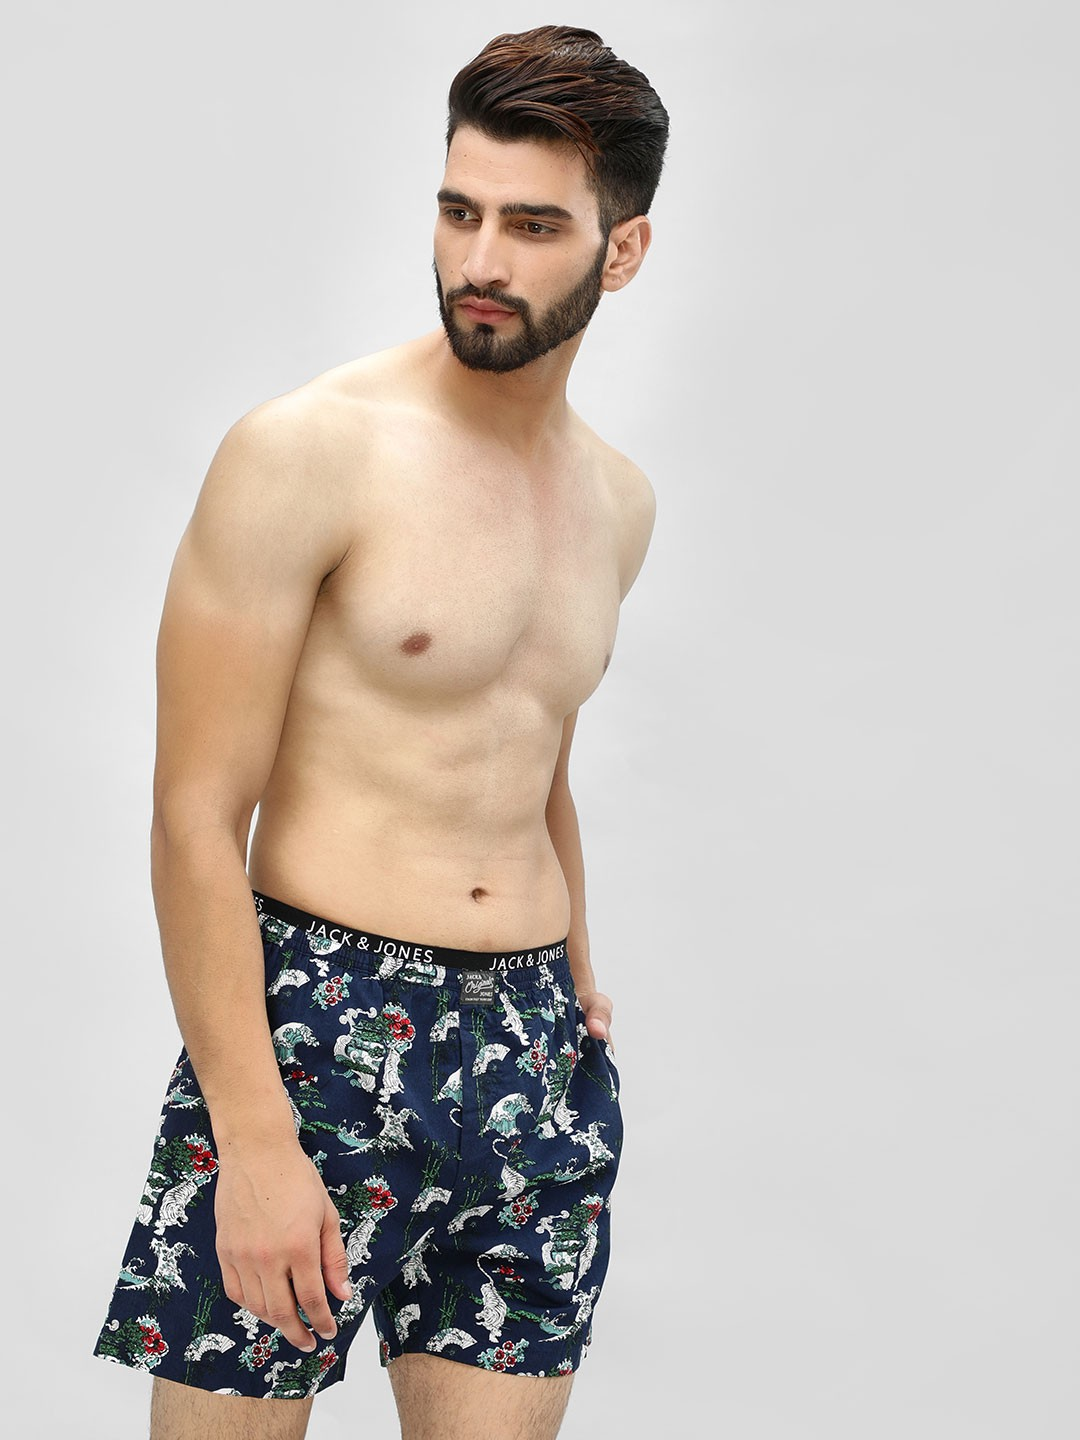 Jack & Jones Blue Japan Tiger Print Boxers 1